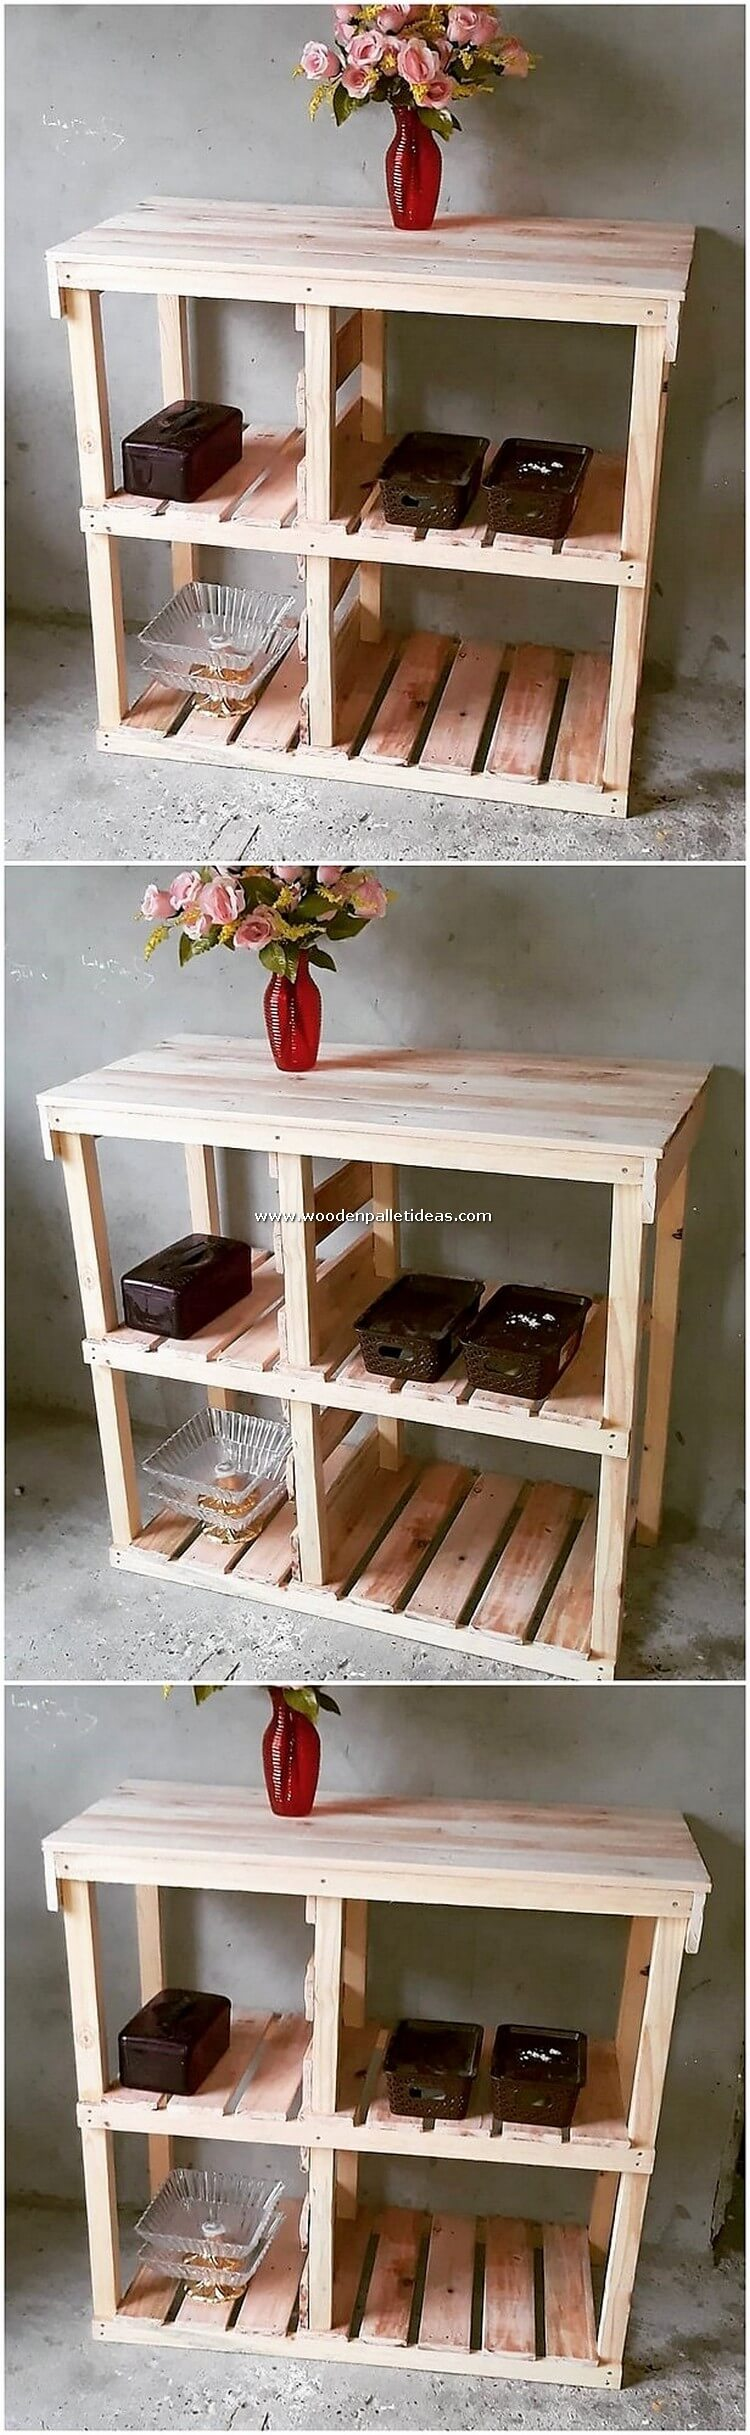 Pallet-Wood-Shelving-Table